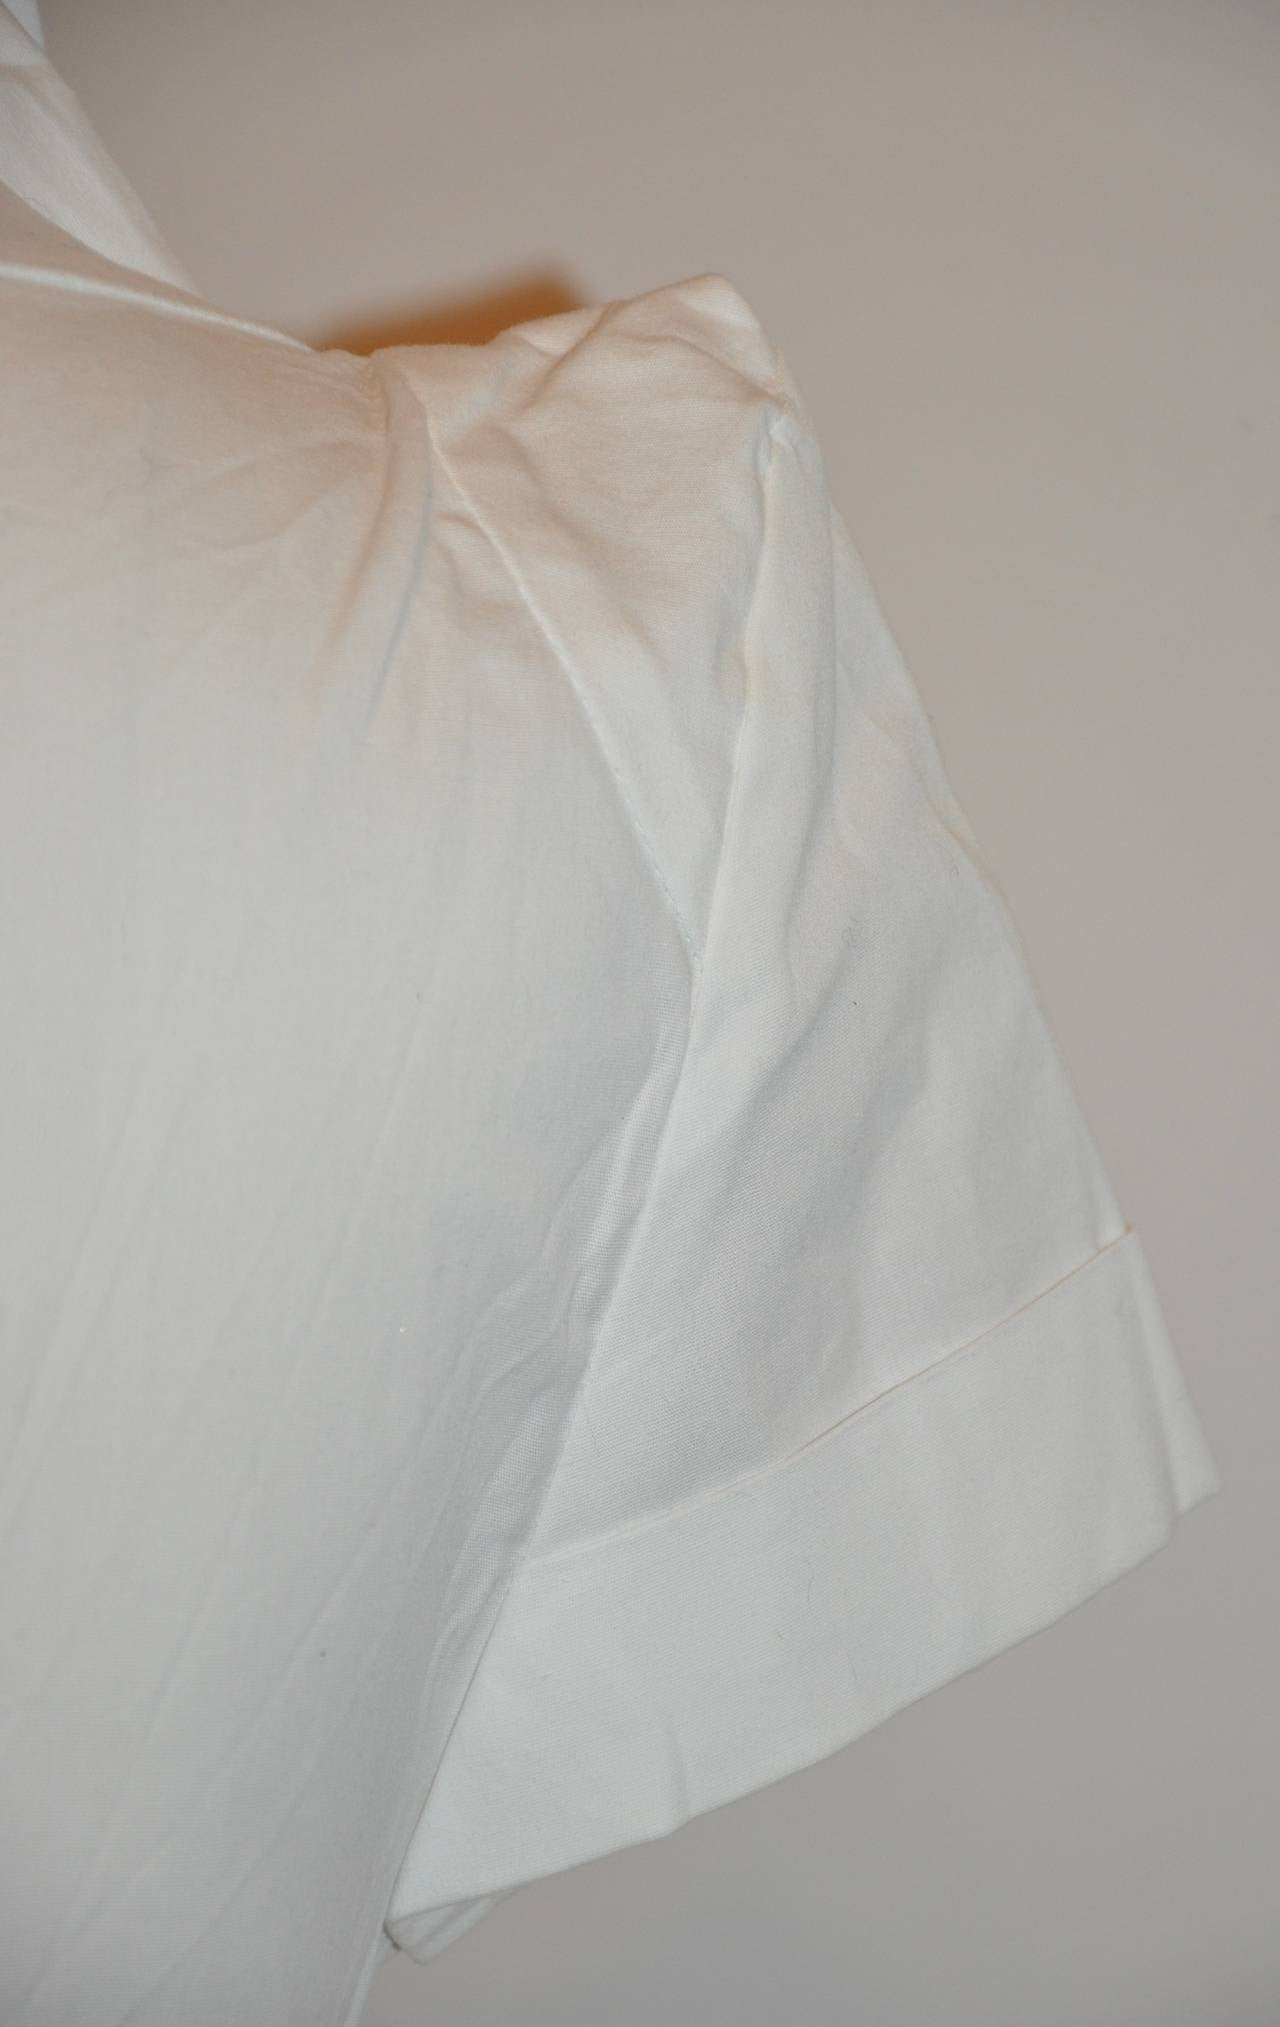 Vivienne Westwood White Deconstructed Top with Tags 6